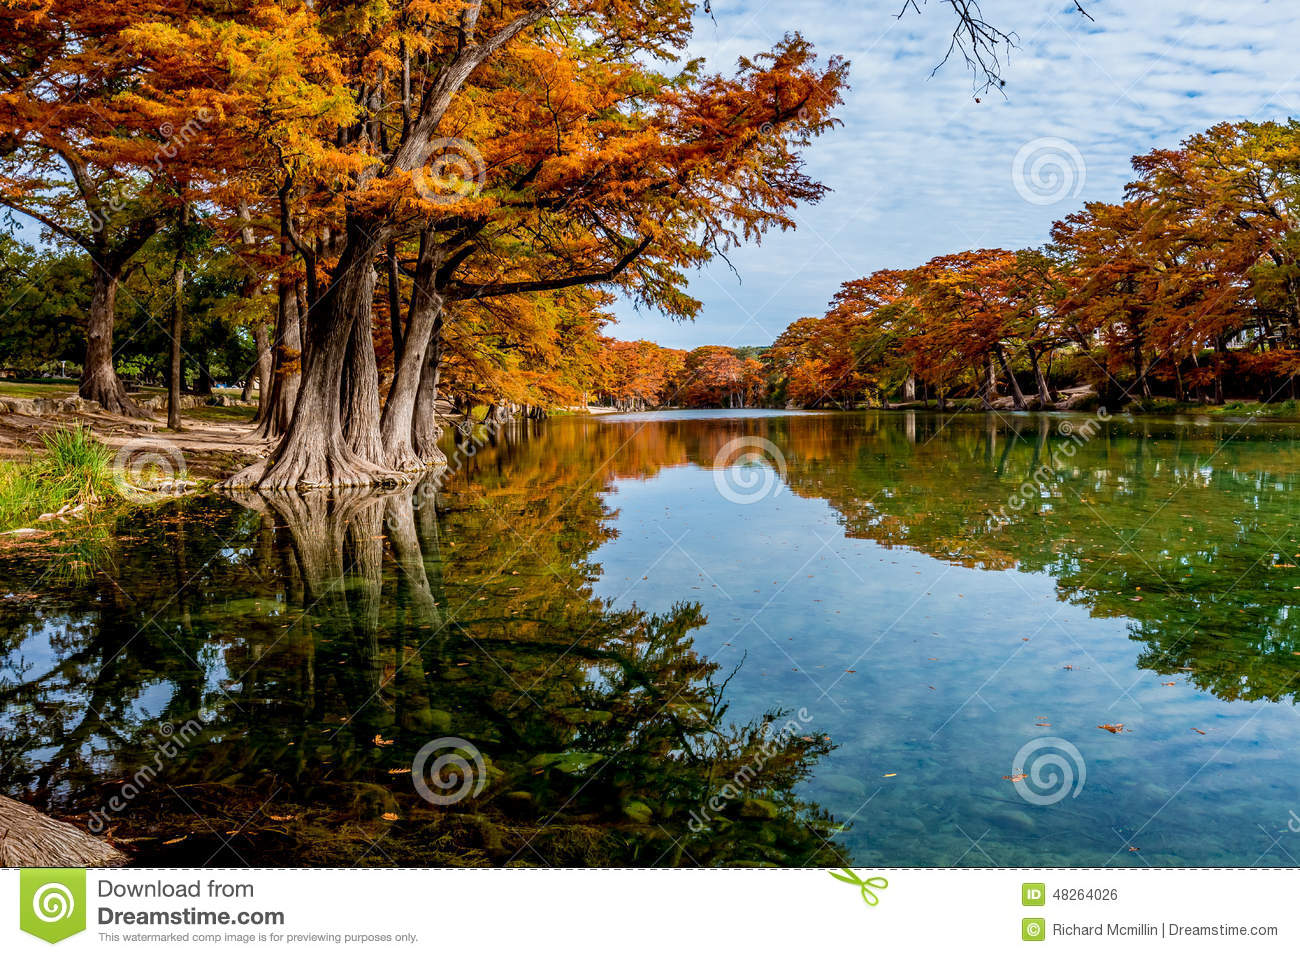 Bright Orange Fall Foliage on the Crystal Clear River at Garner State Park, Texas